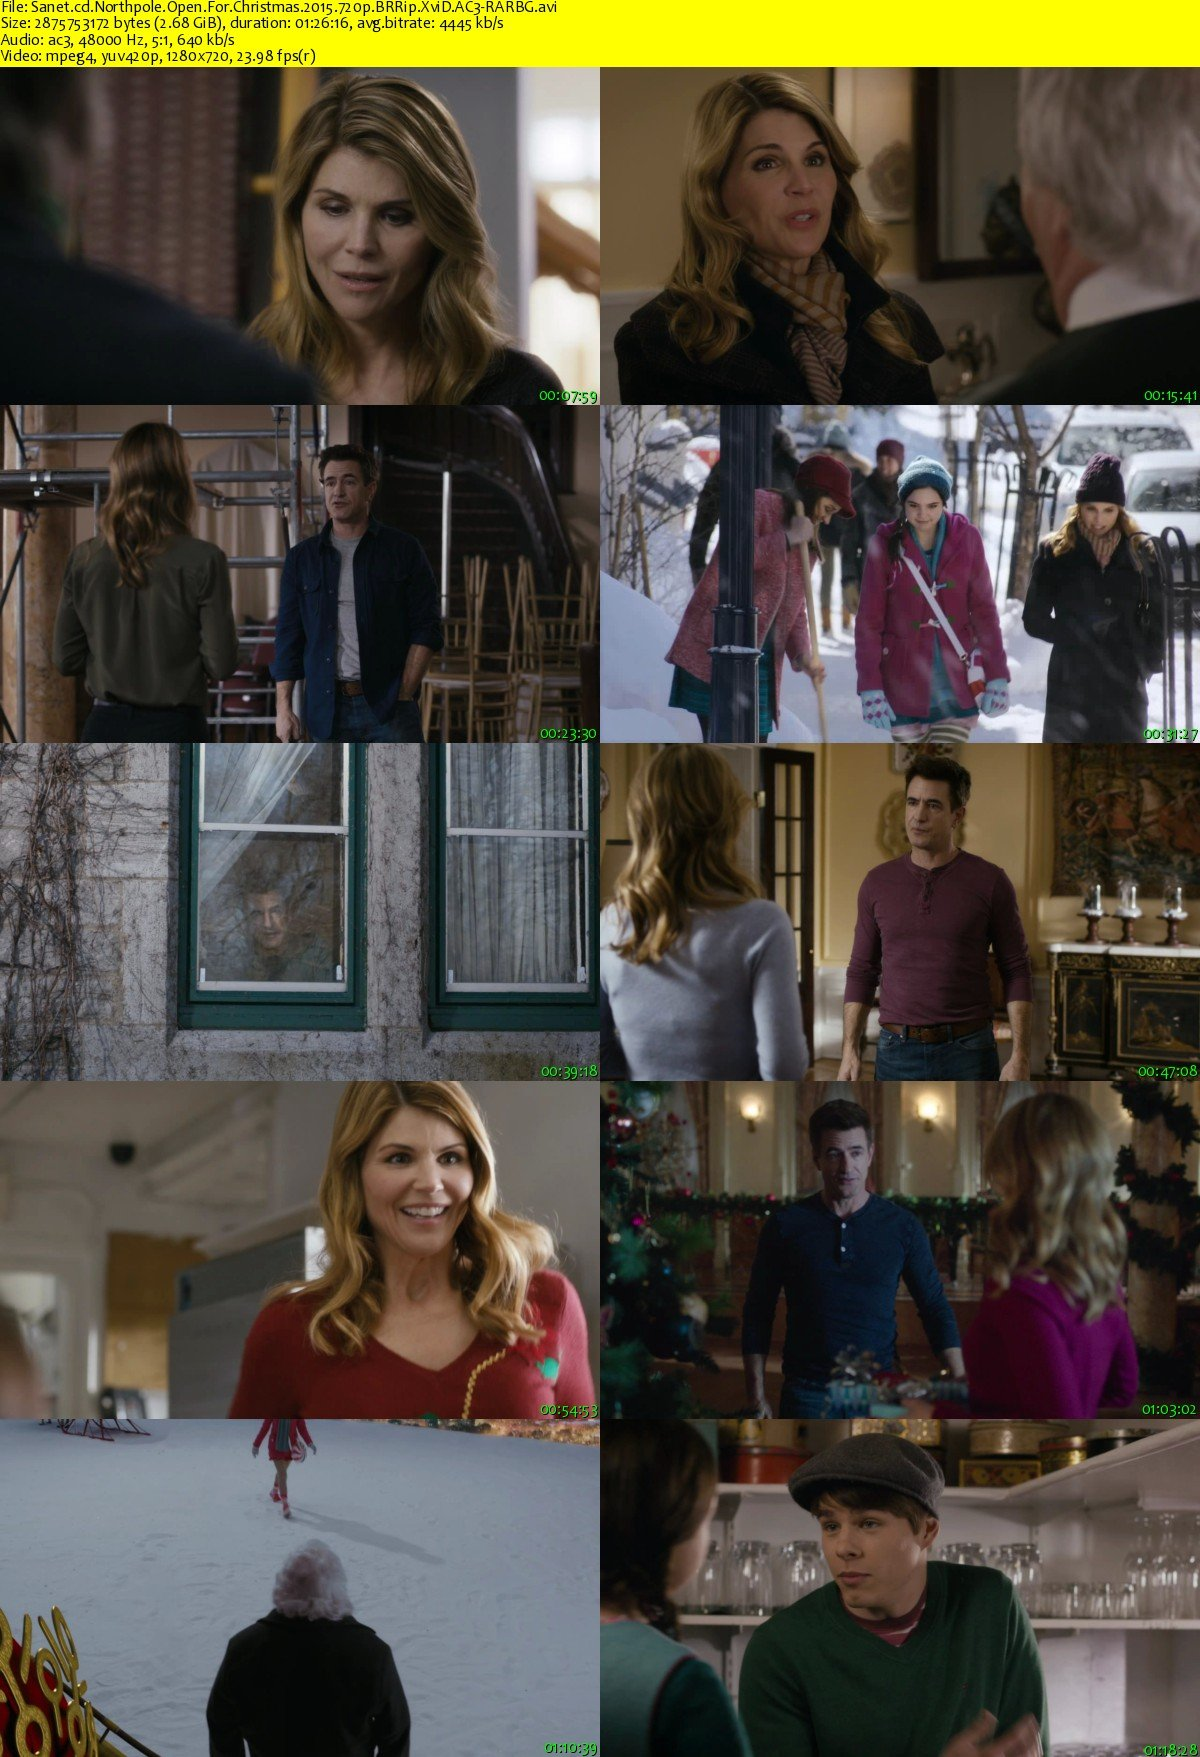 Download Northpole Open For Christmas 2015 720p BRRip XviD AC3-RARBG ...